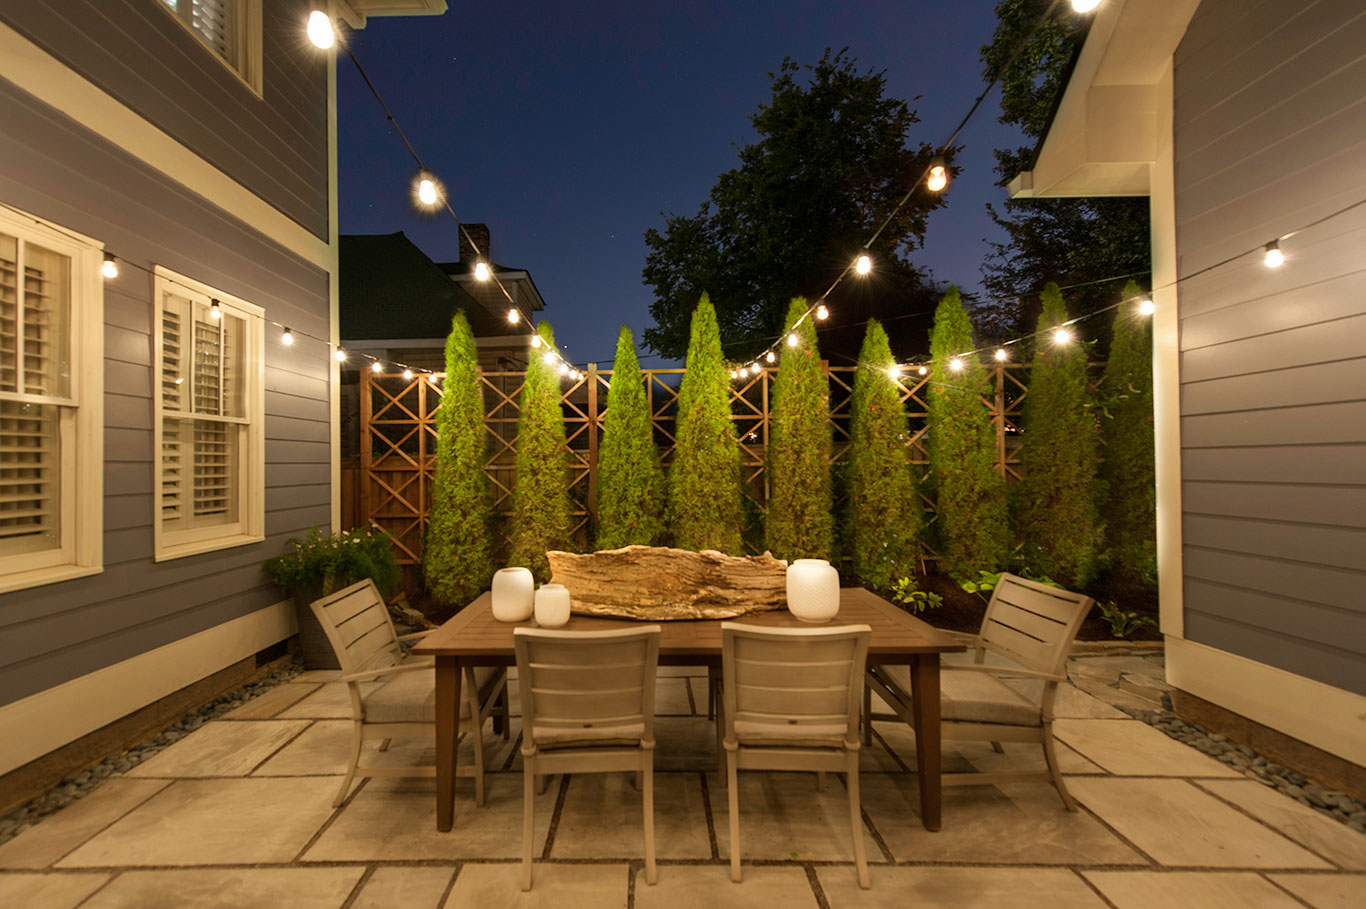 Outdoor lighting in nashville tn light up nashville - How to design outdoor lighting plan ...